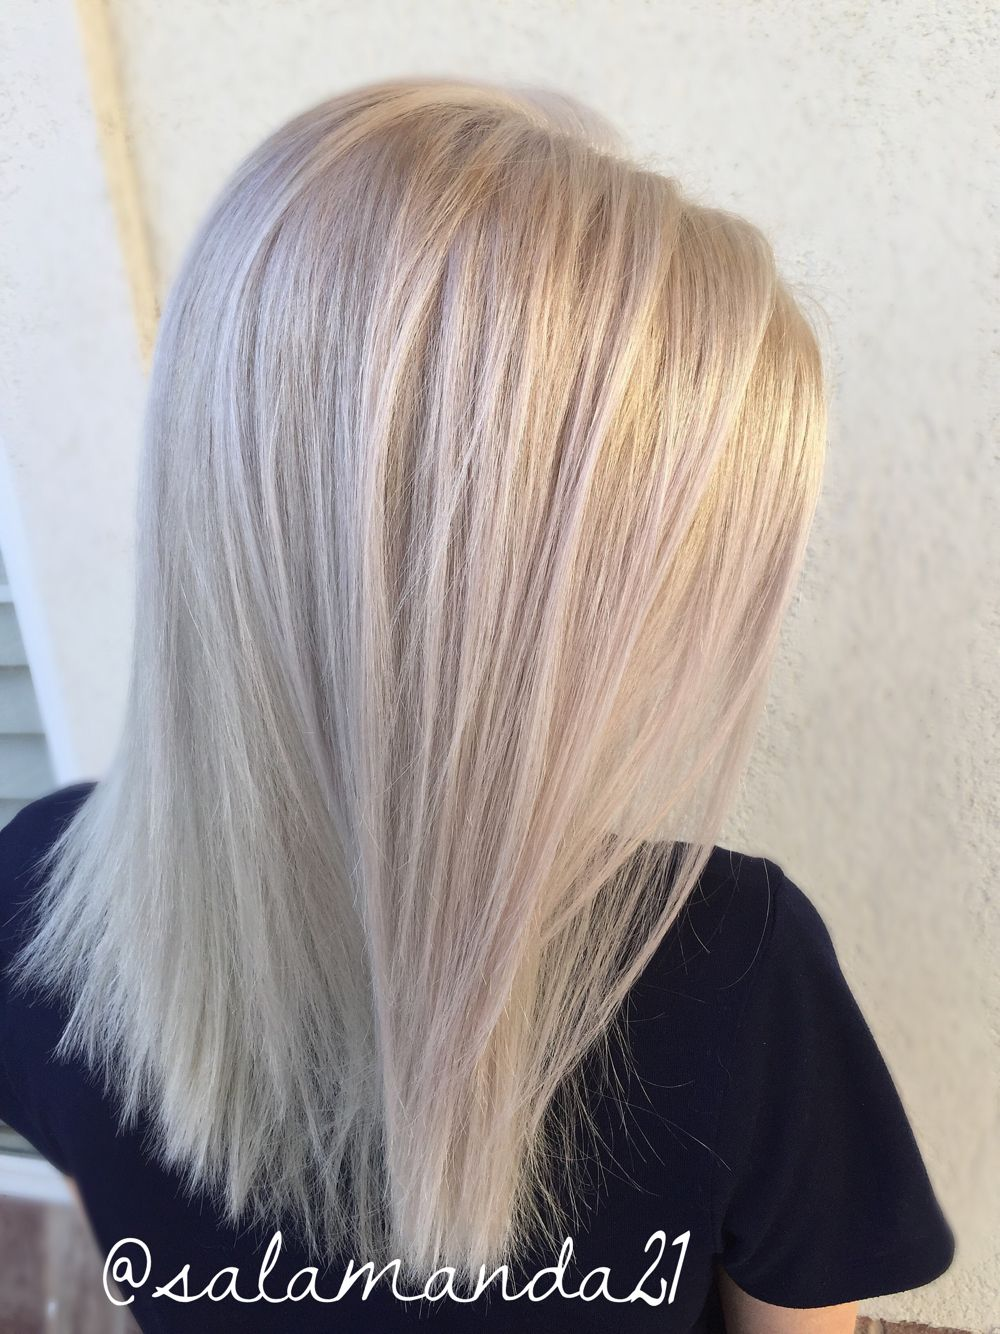 White blonde all over platinum hair done by me manda halladay white blonde all over platinum hair done by me manda halladay salamanda21 pmusecretfo Choice Image